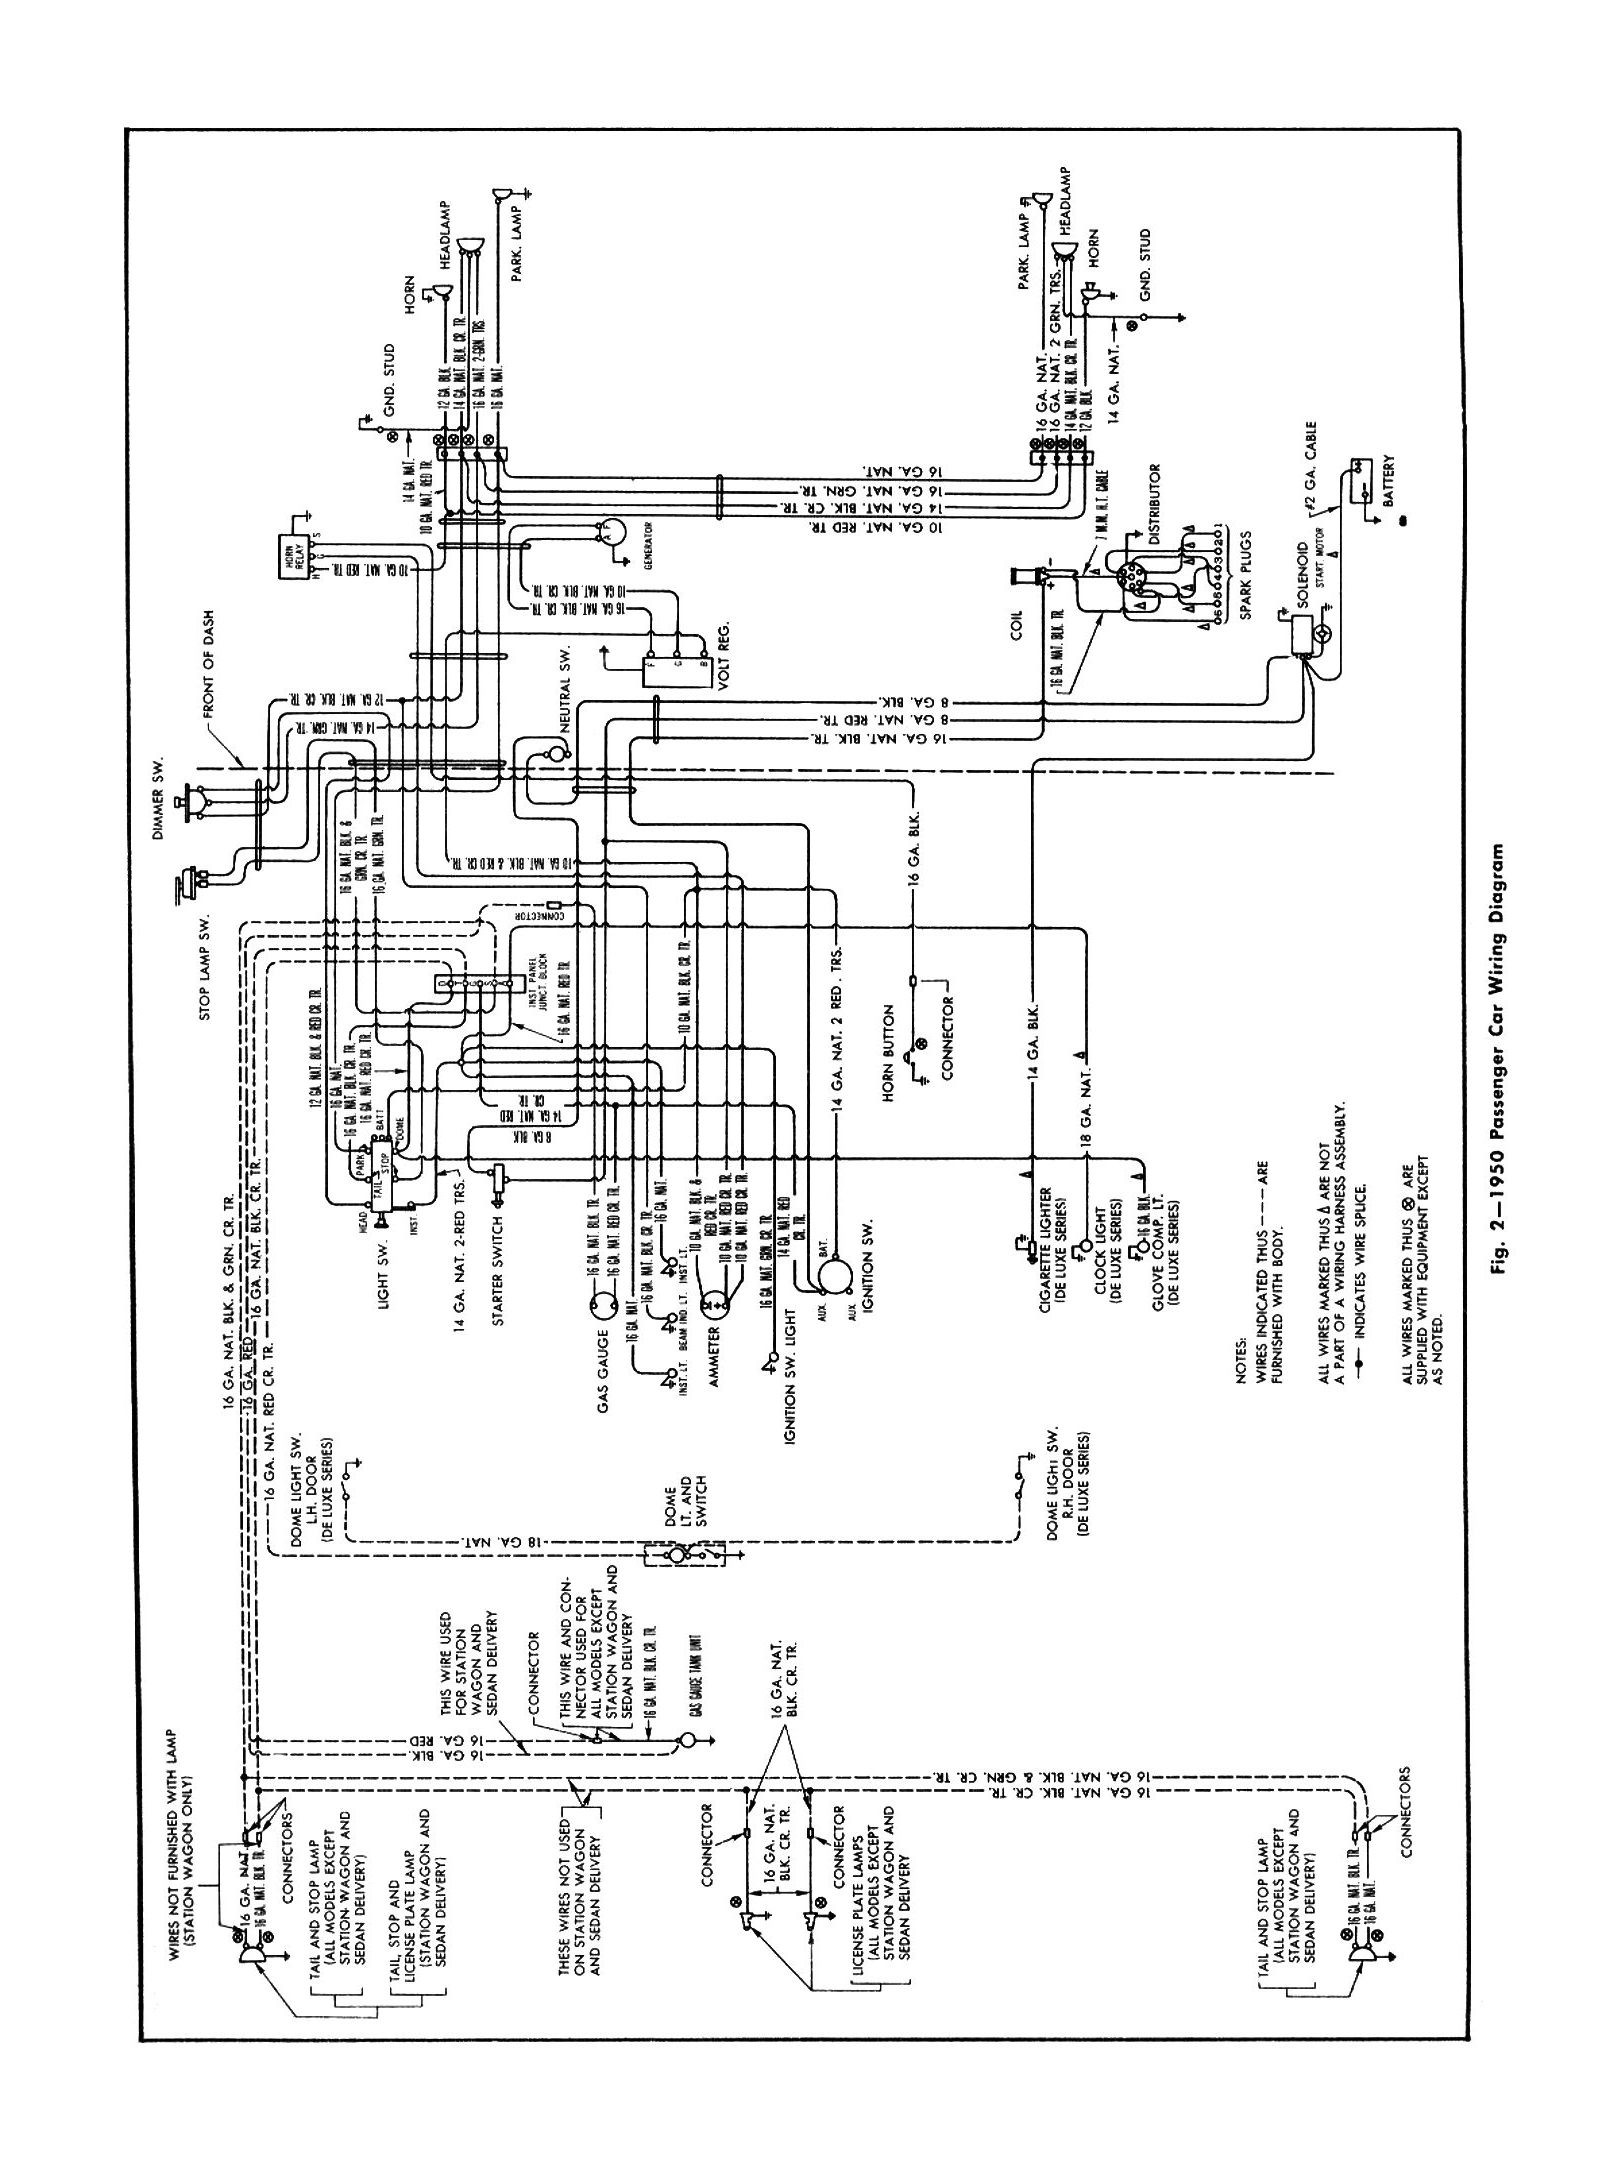 50car chevy wiring diagrams chevy truck wiring diagram at fashall.co